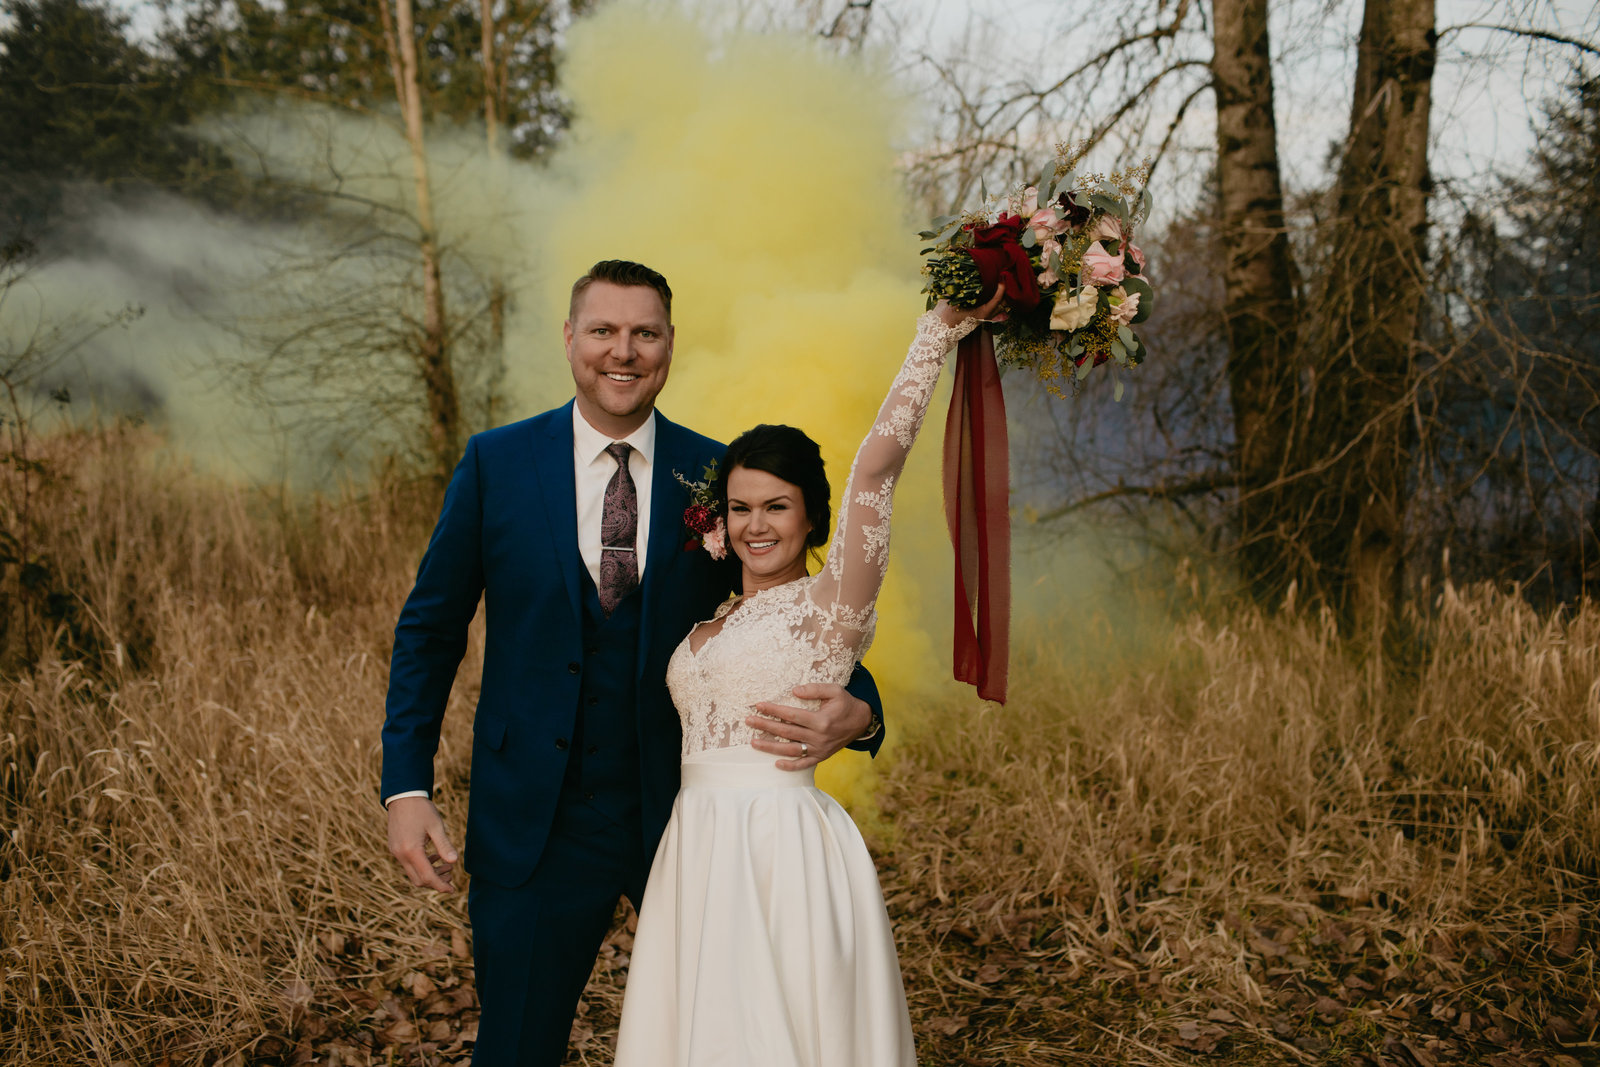 FORT-LANGLEY-MILNER-CHAPPEL-WEDDING-MEGHAN-HEMSTRA-PHOTOGRAPHY-7